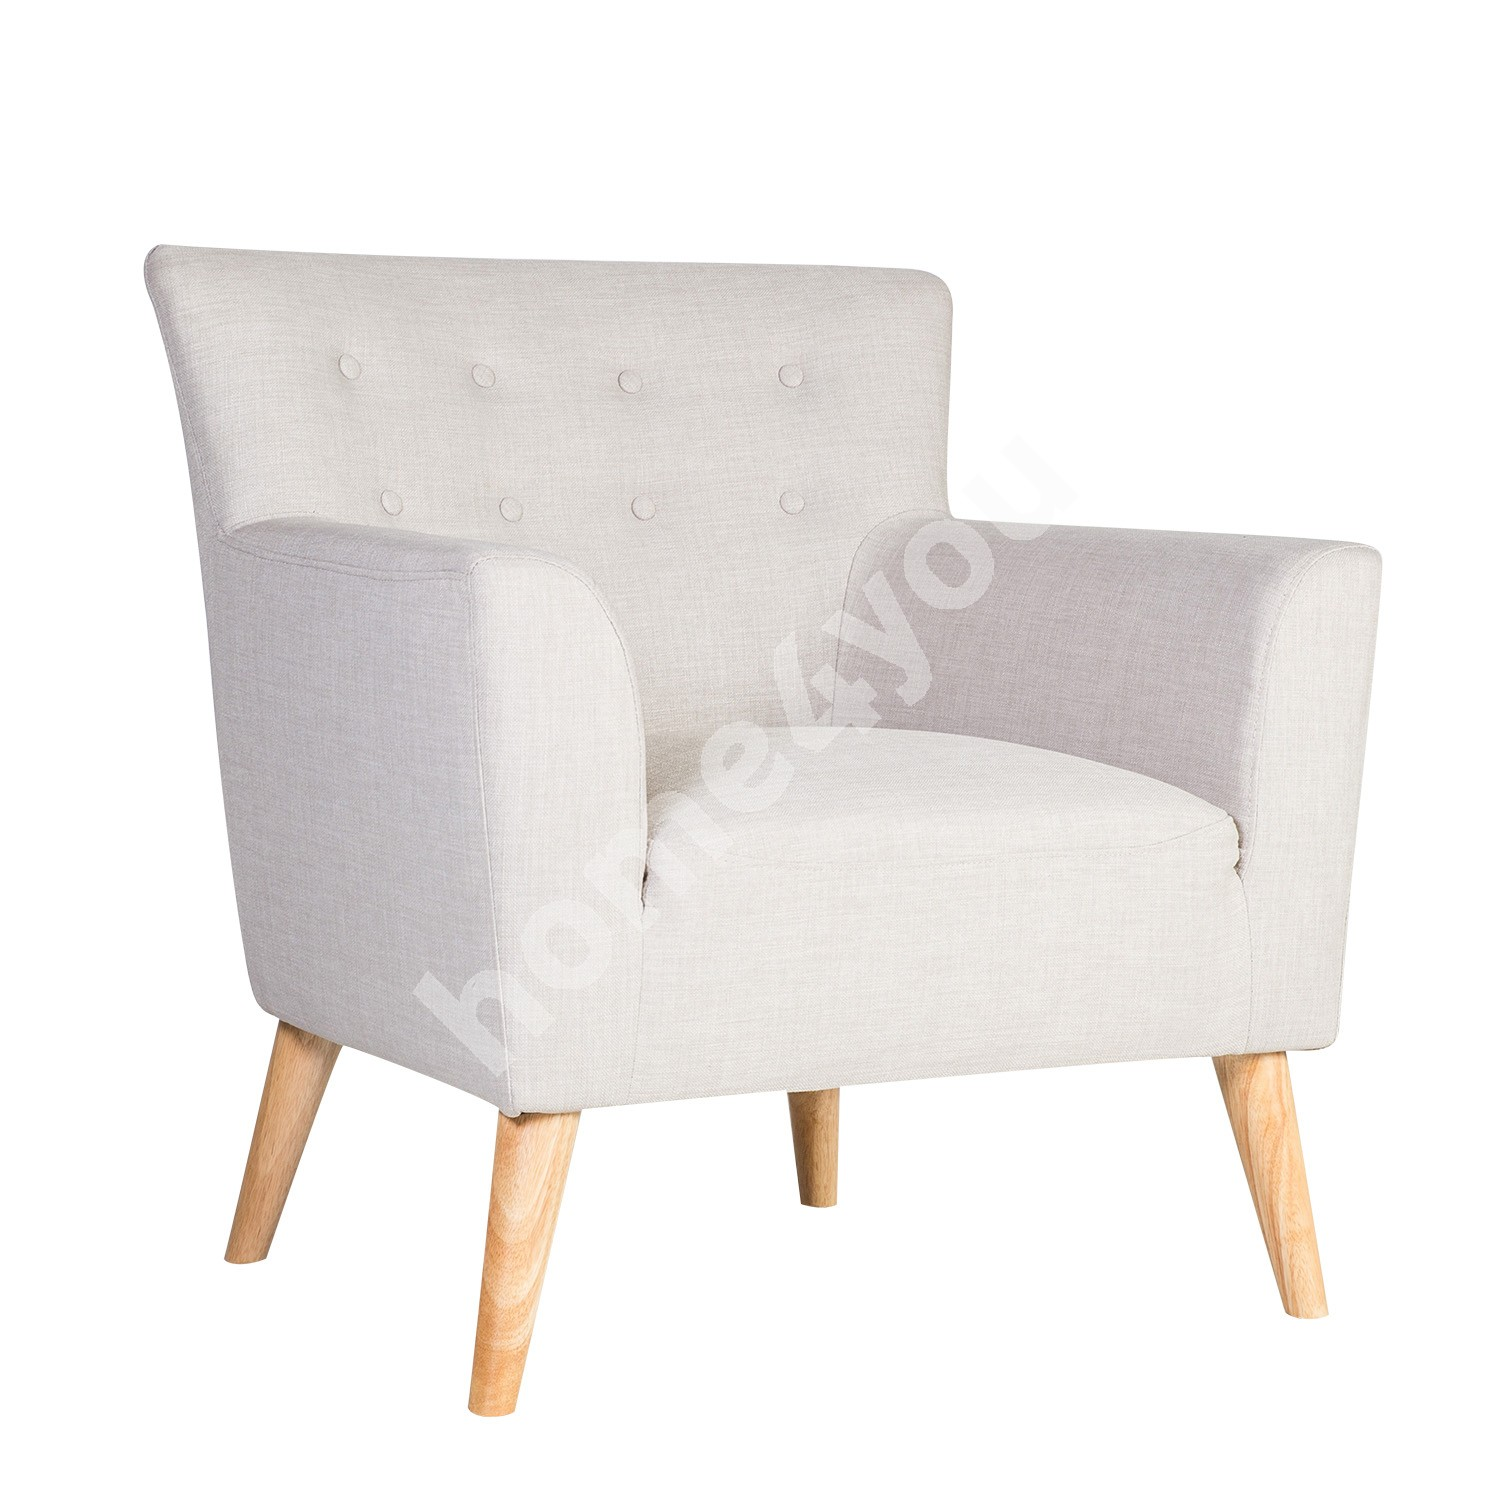 Arm chair MOVIE 83x76xH83cm, cover material: fabric, color: light grey